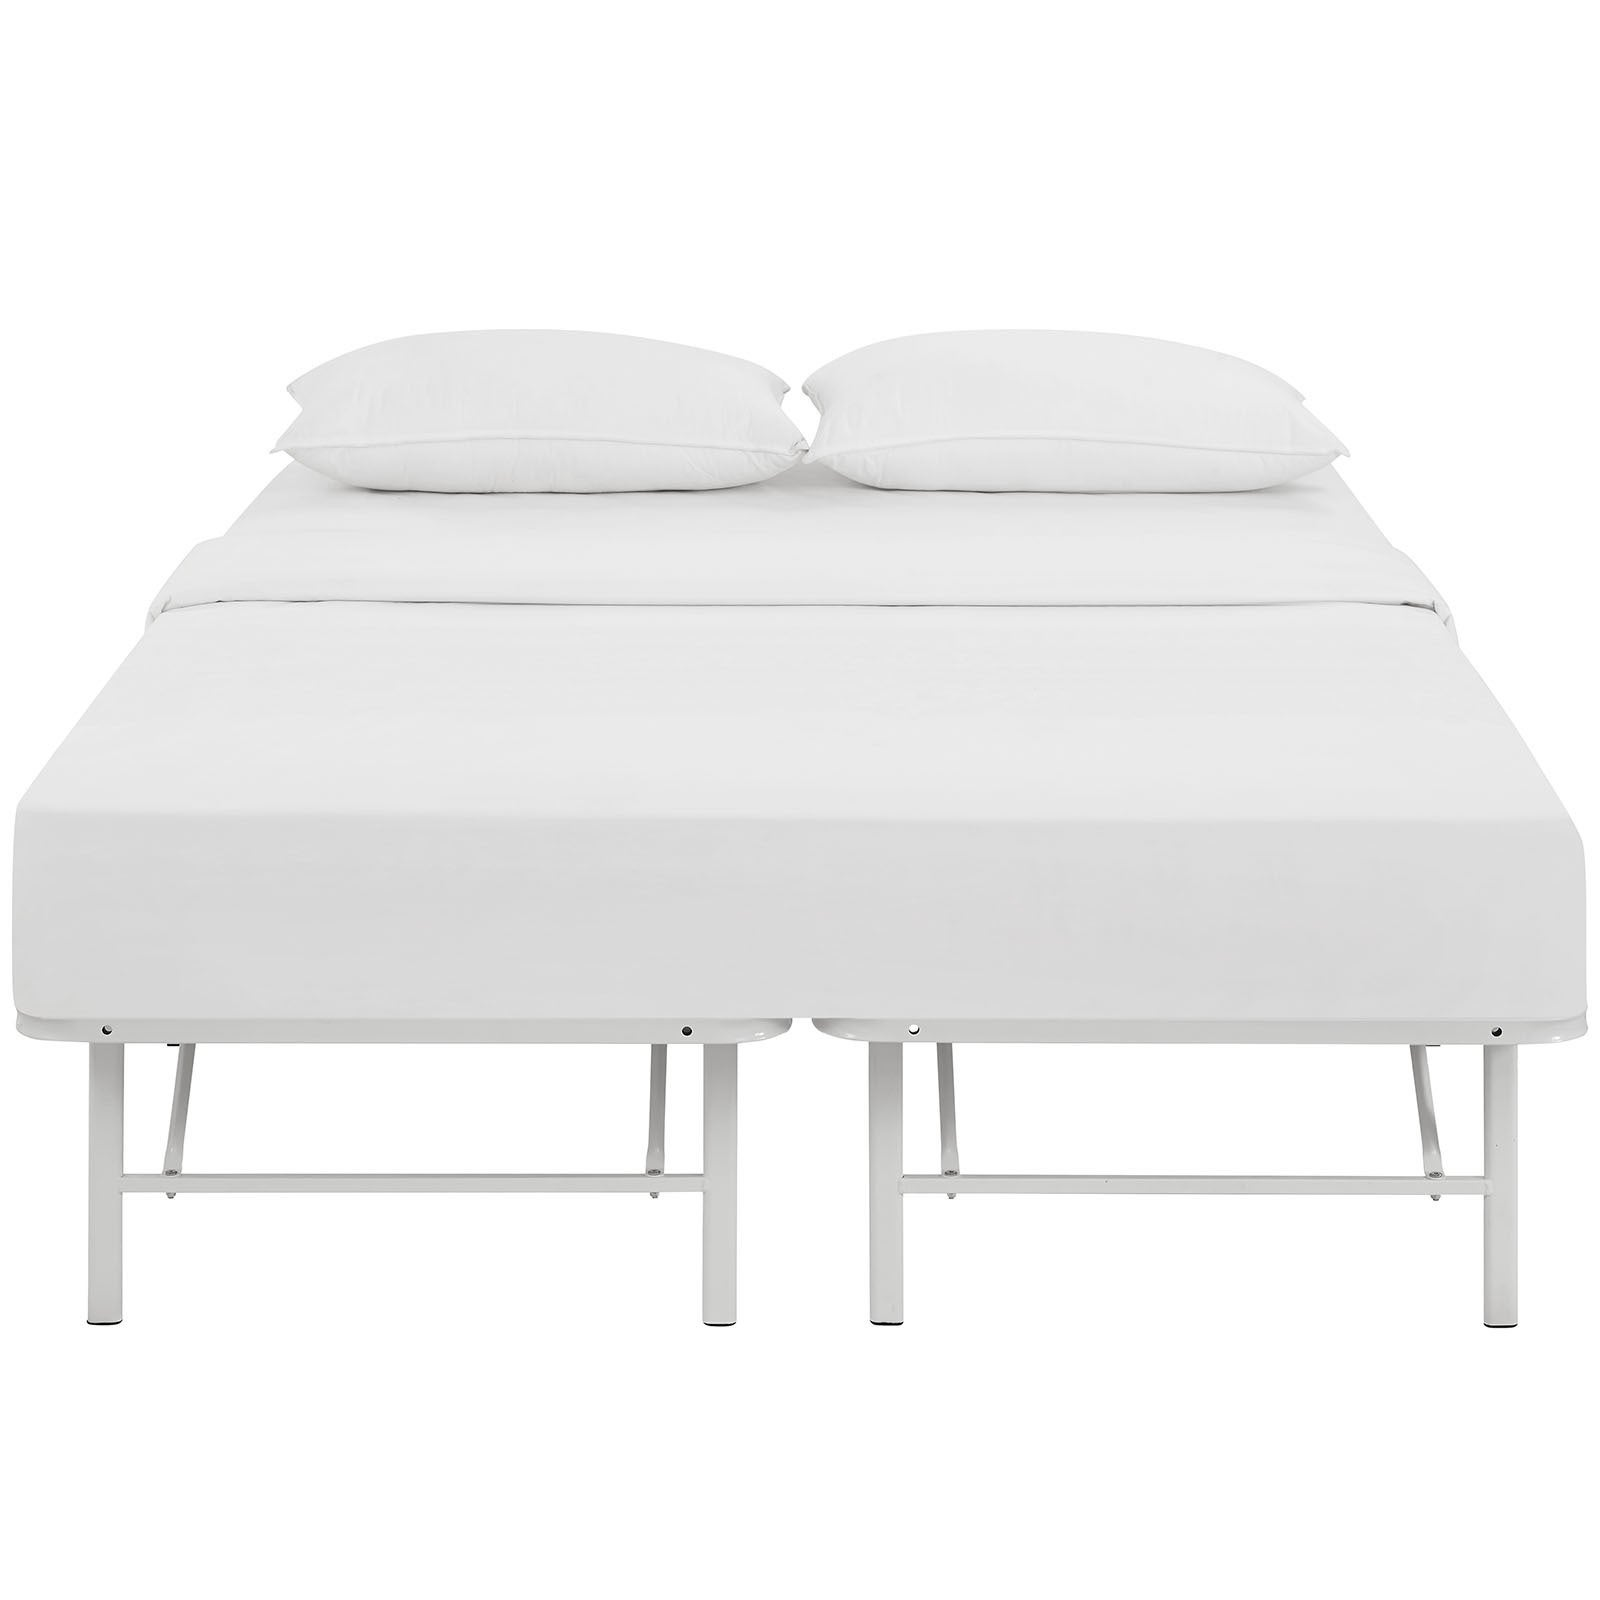 Shop Horizon White Stainless Steel Bed Frame - Free Shipping Today ...